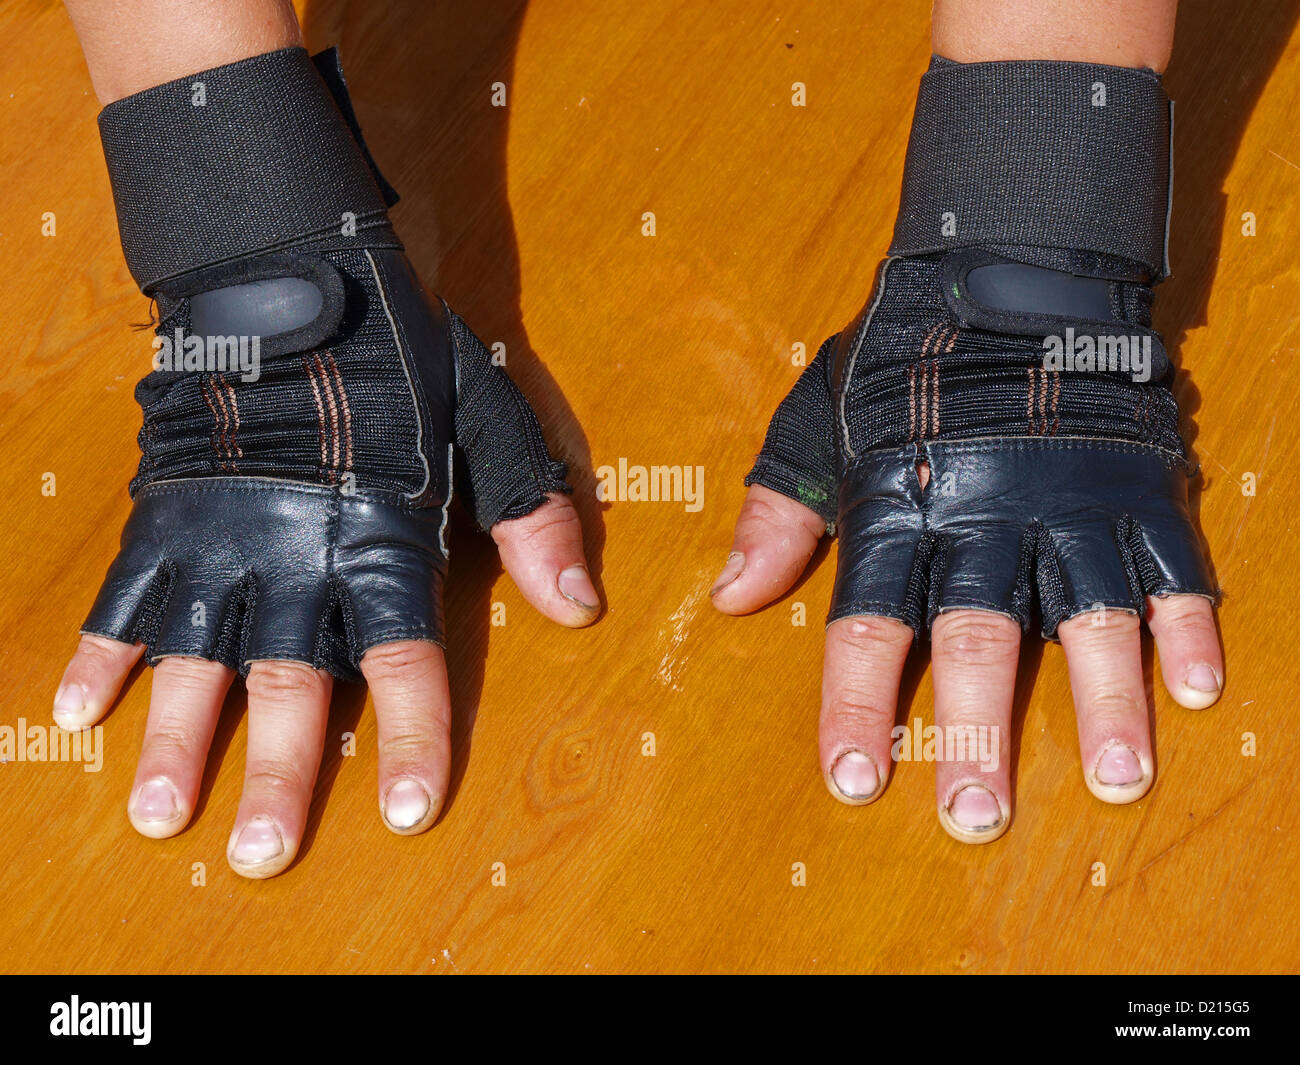 Black leather gloves with coloured fingers - Hands In Black Leather Gloves Without Fingers For Weight Lifting Close Up